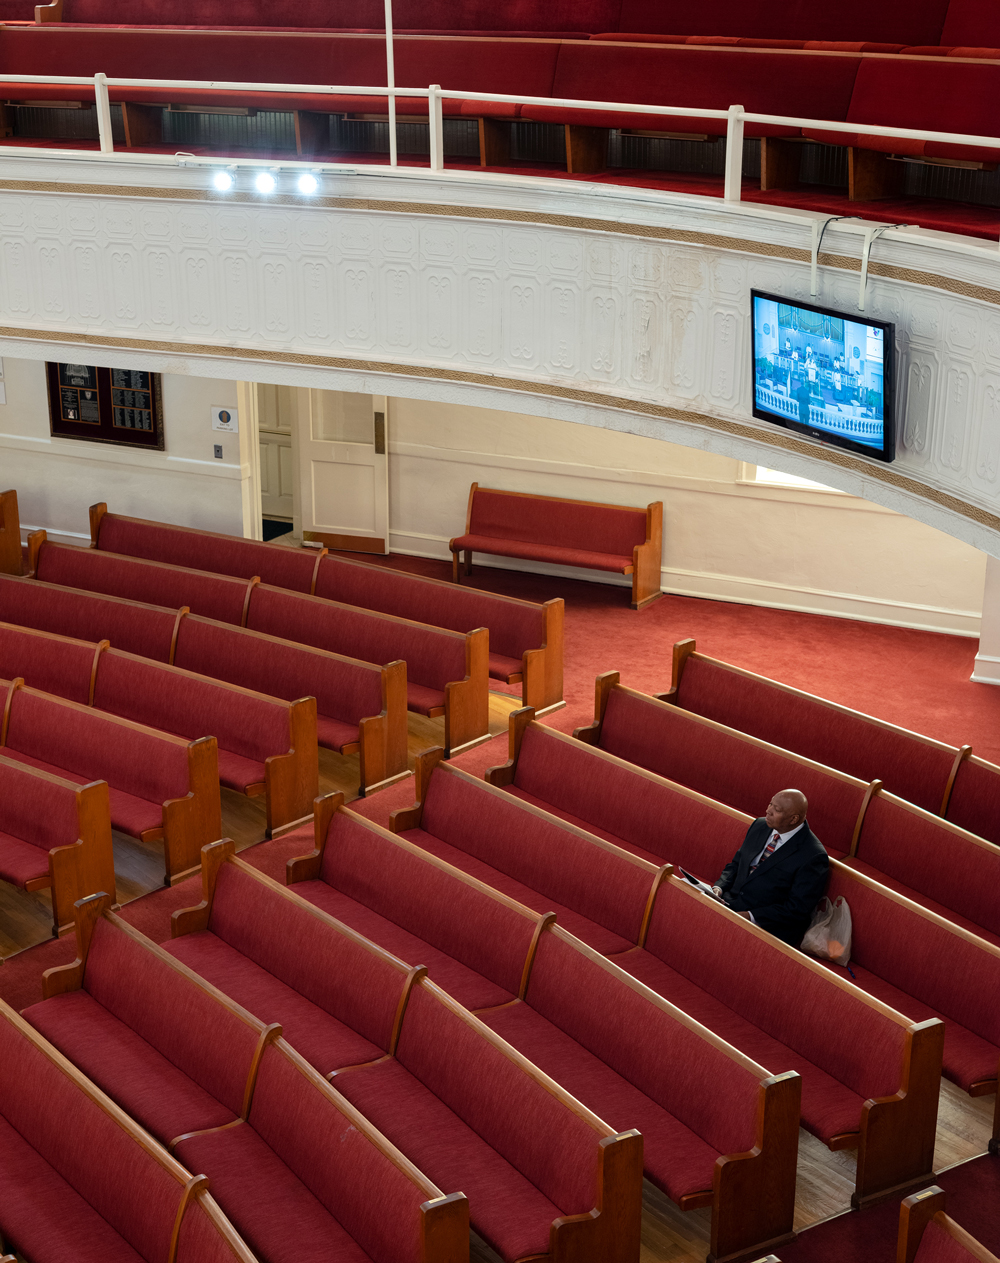 A man listens to Easter service at Big Bethel AME Church as it's being broadcast online.